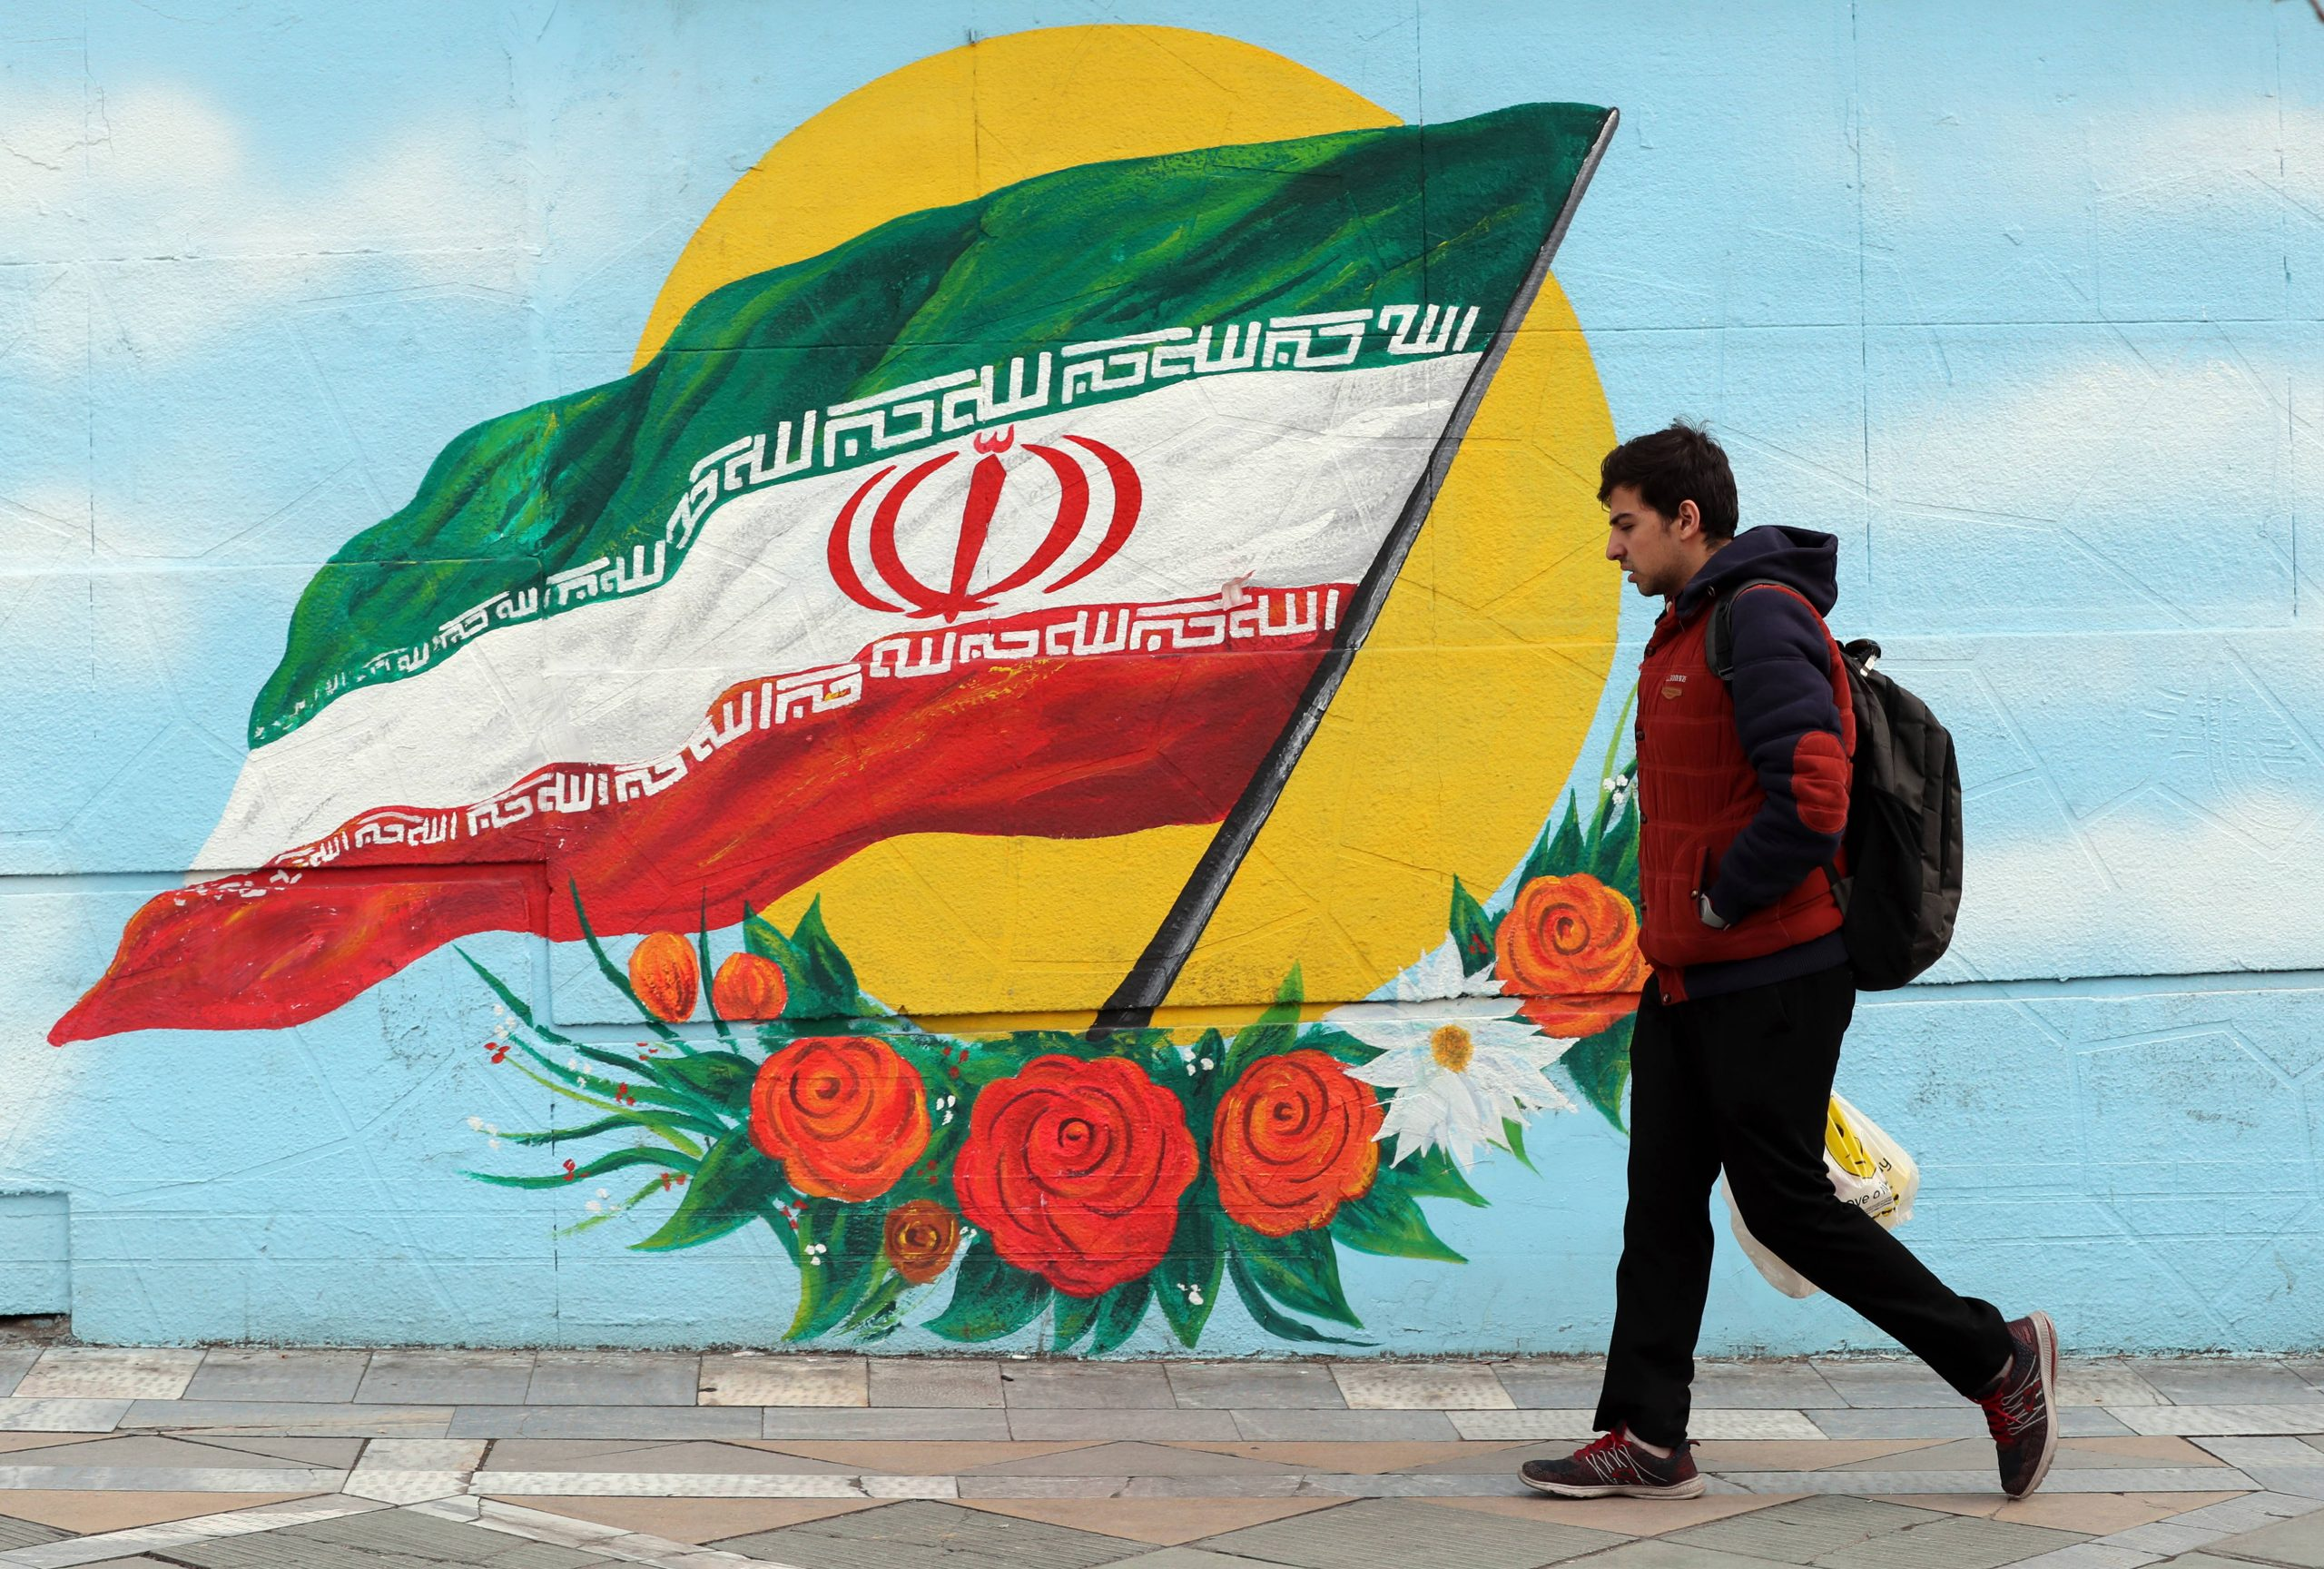 Aggression or collective security: HOPE, another face of Iran